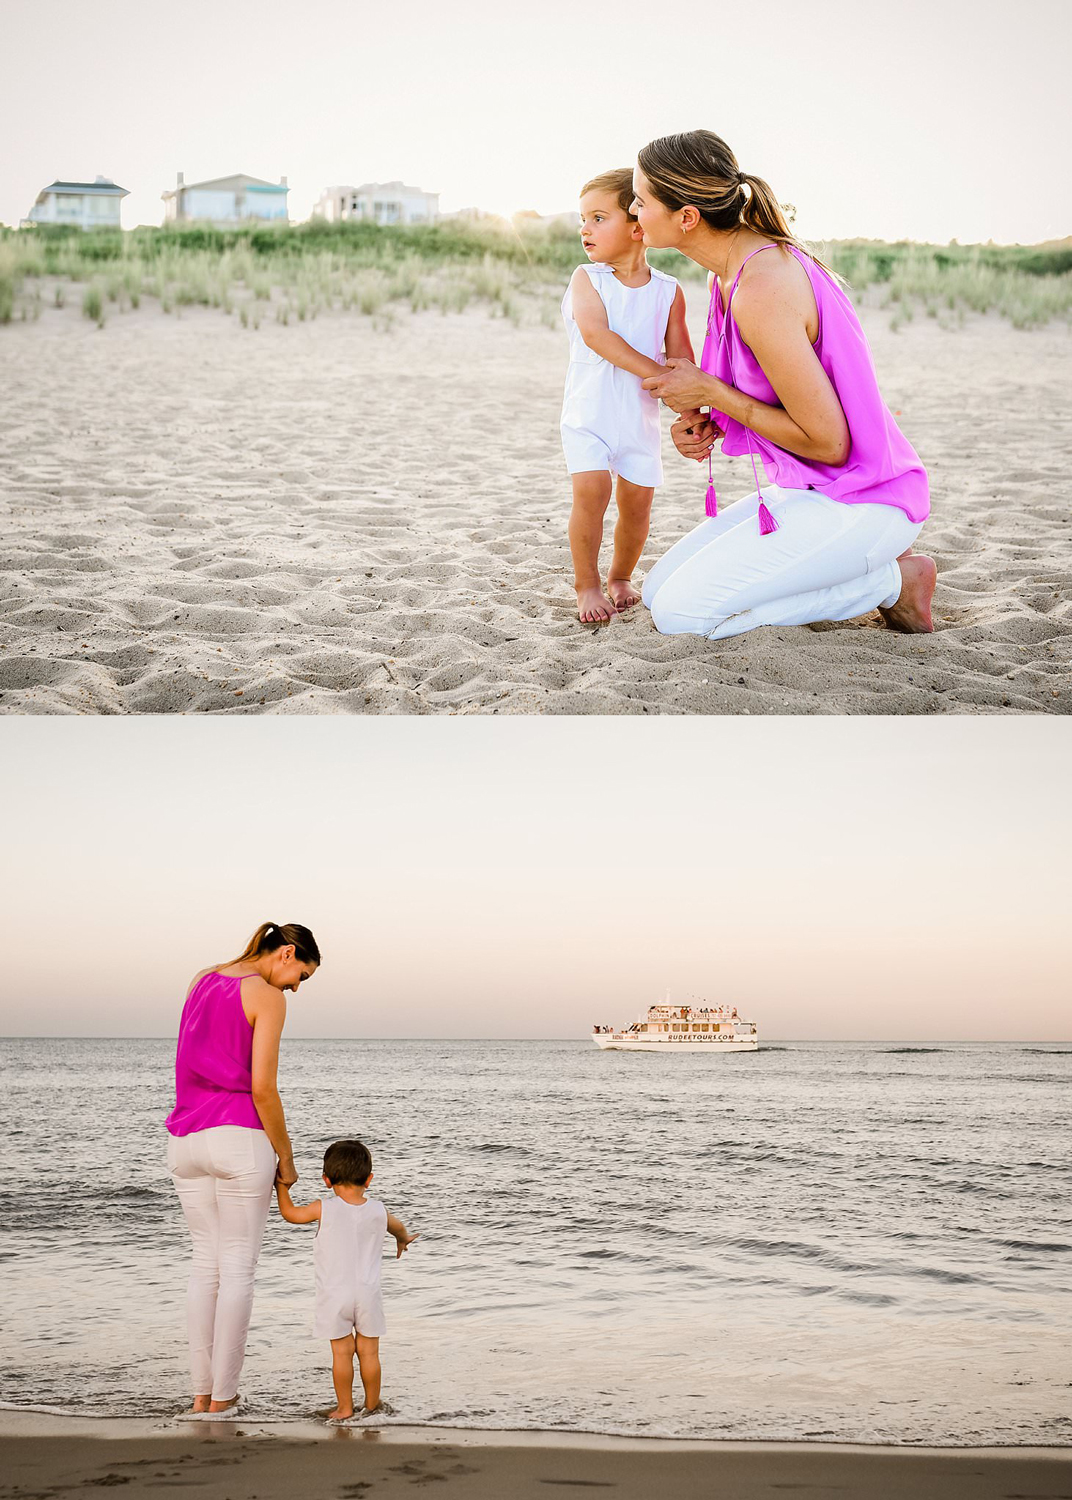 creative-lifestyle-photography-melissa-bliss-photography-va-beach-norfolk-williamsburg.jpg